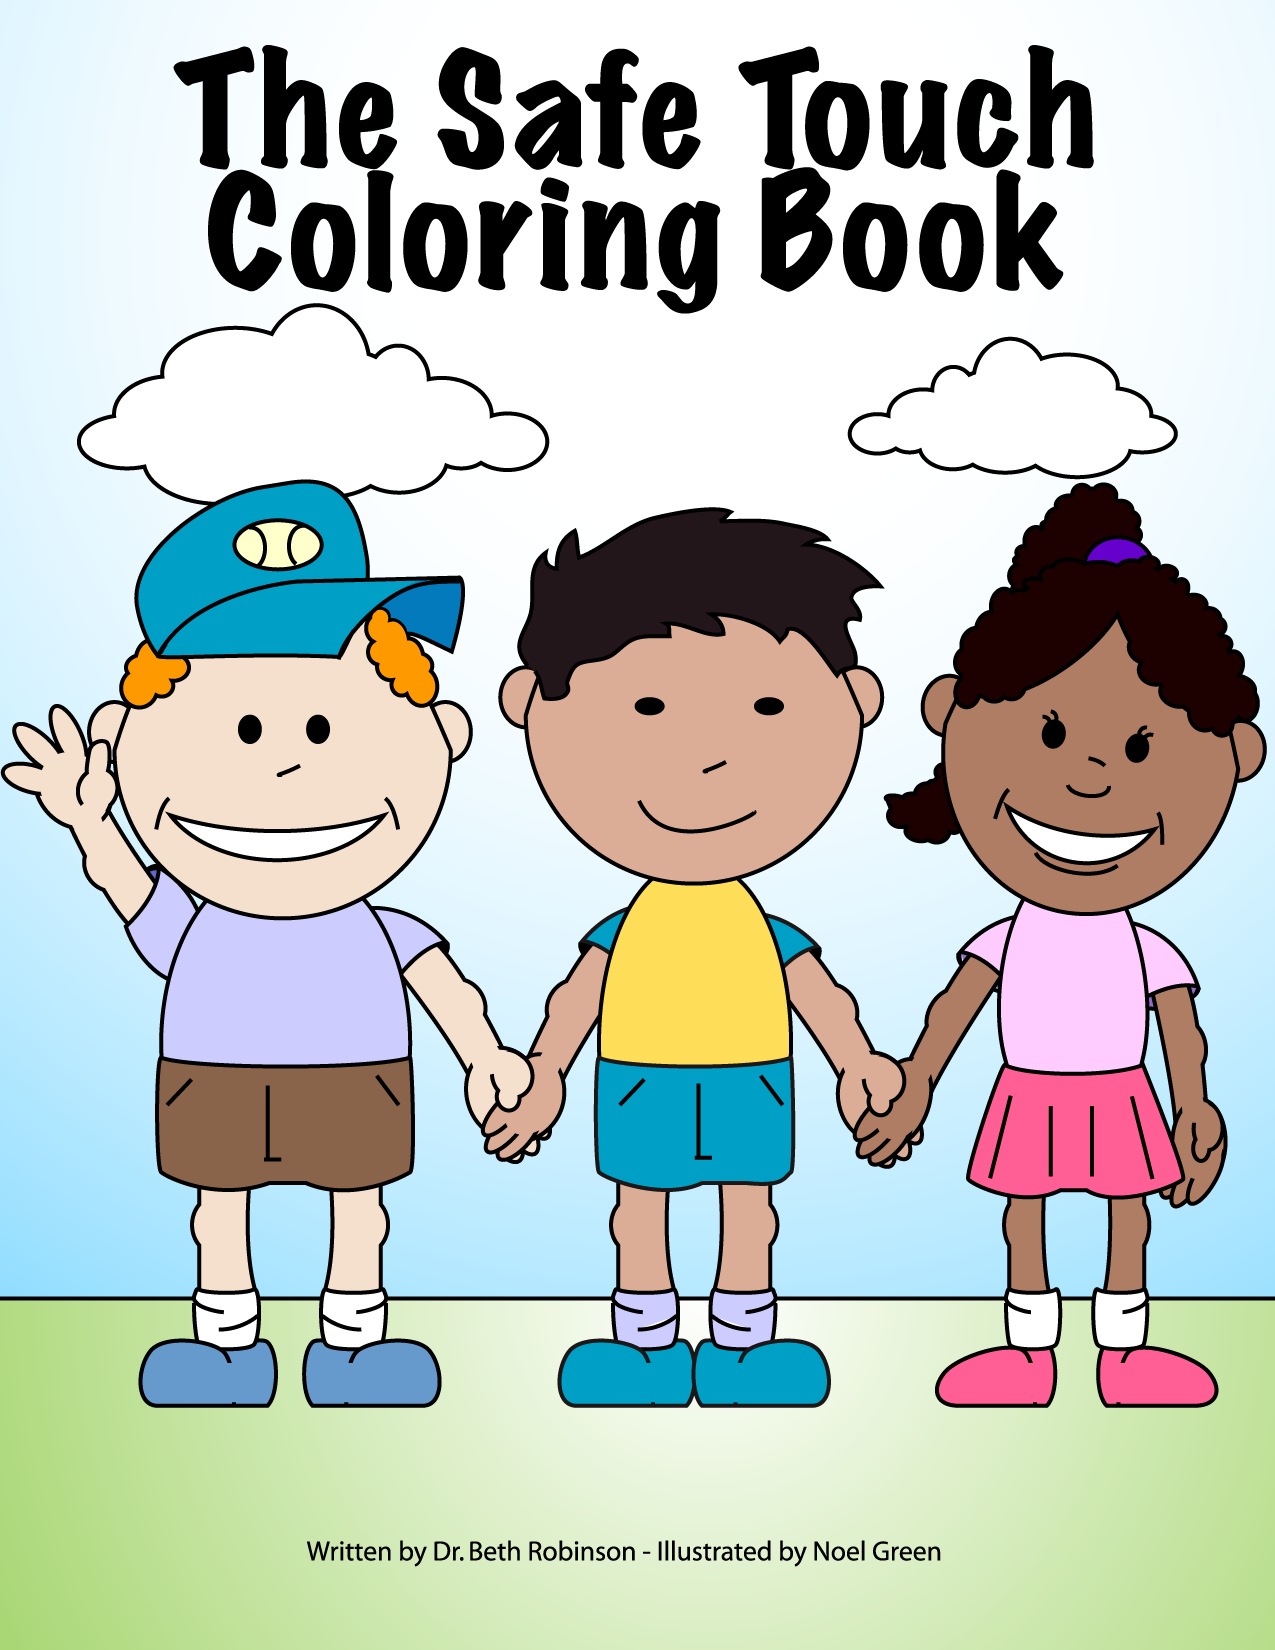 Coloring books for childhood diseases - The Safe Touch Coloring Book Provides An Easy Way For Adults To Teach Children How To